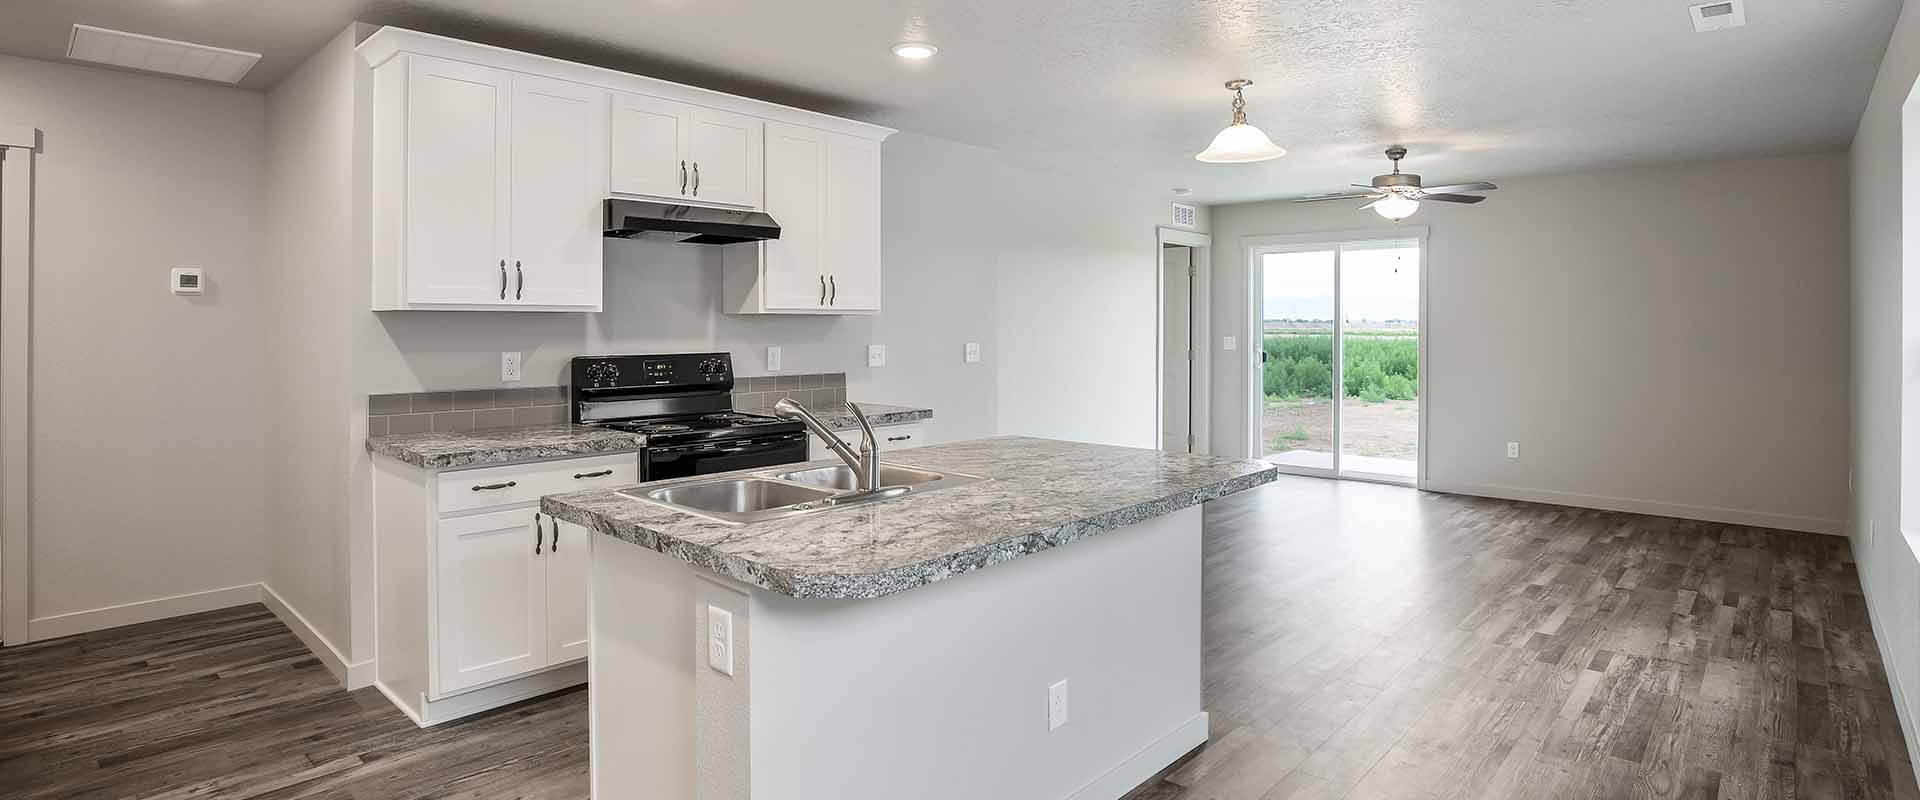 Monarch_Hubble_Homes_New_Homes_Boise_Kitchen_View1.jpg